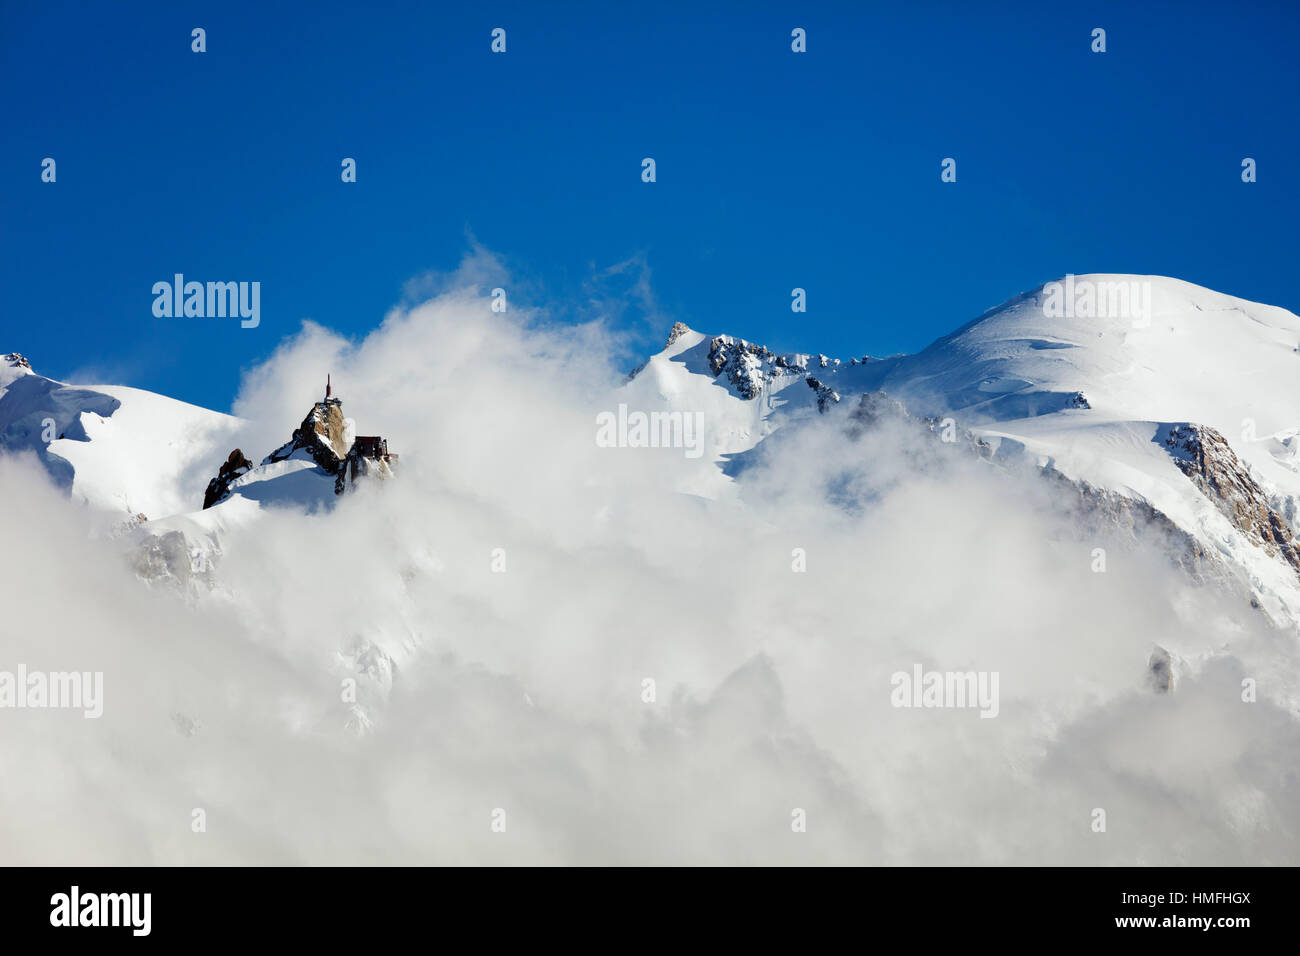 Mont Blanc, 4810m, and Aiguille du Midi cable car station, Chamonix, Haute Savoie, Rhone Alpes, French Alps, France - Stock Image